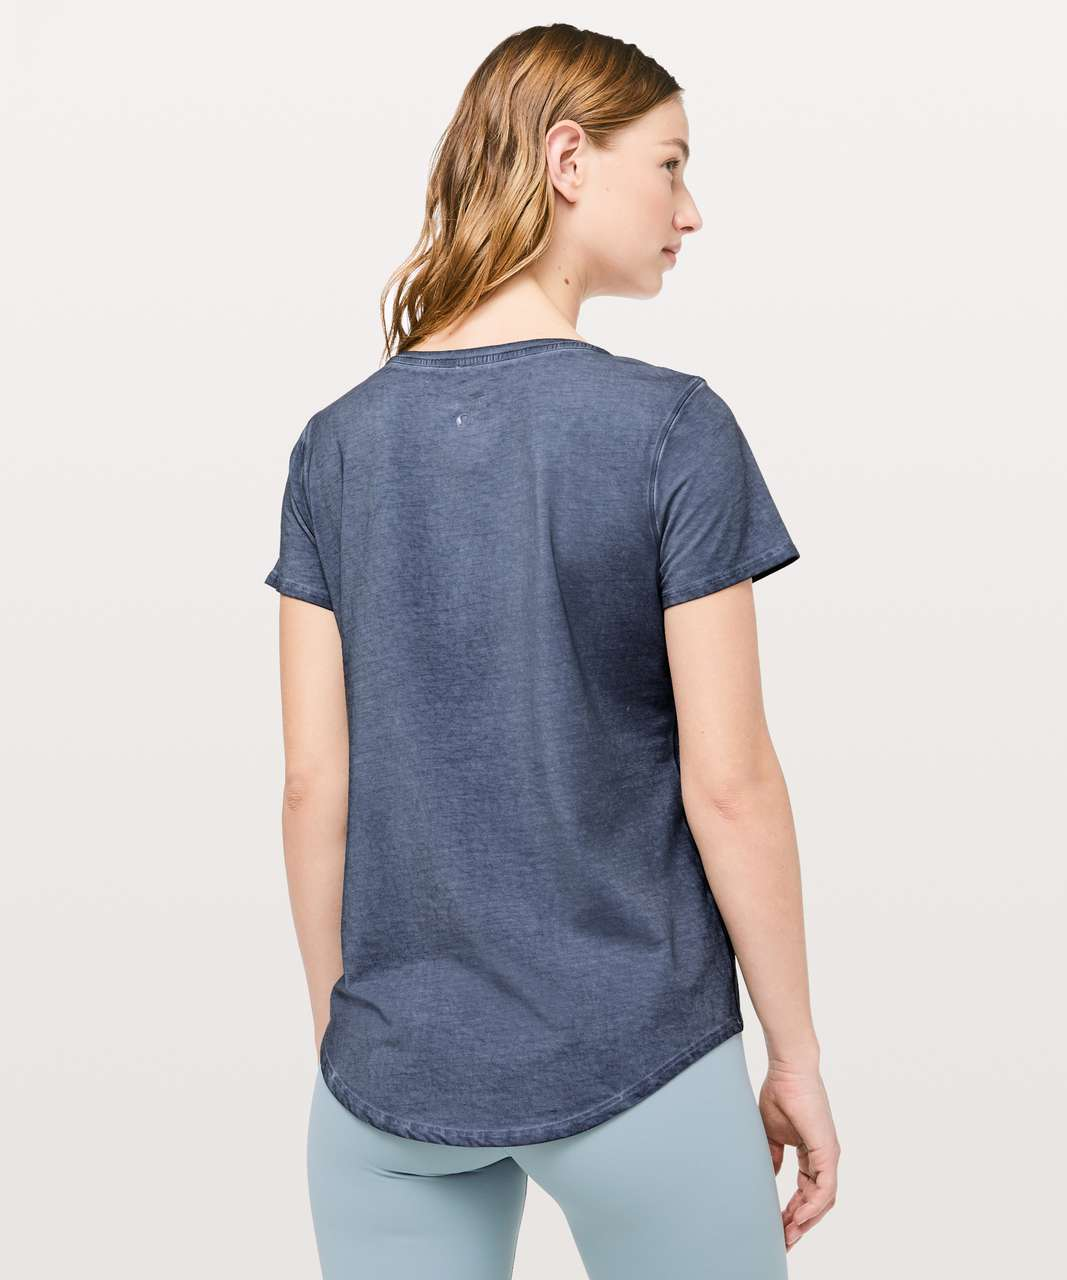 Lululemon Love Tee *Fade - Washed Moon Blue